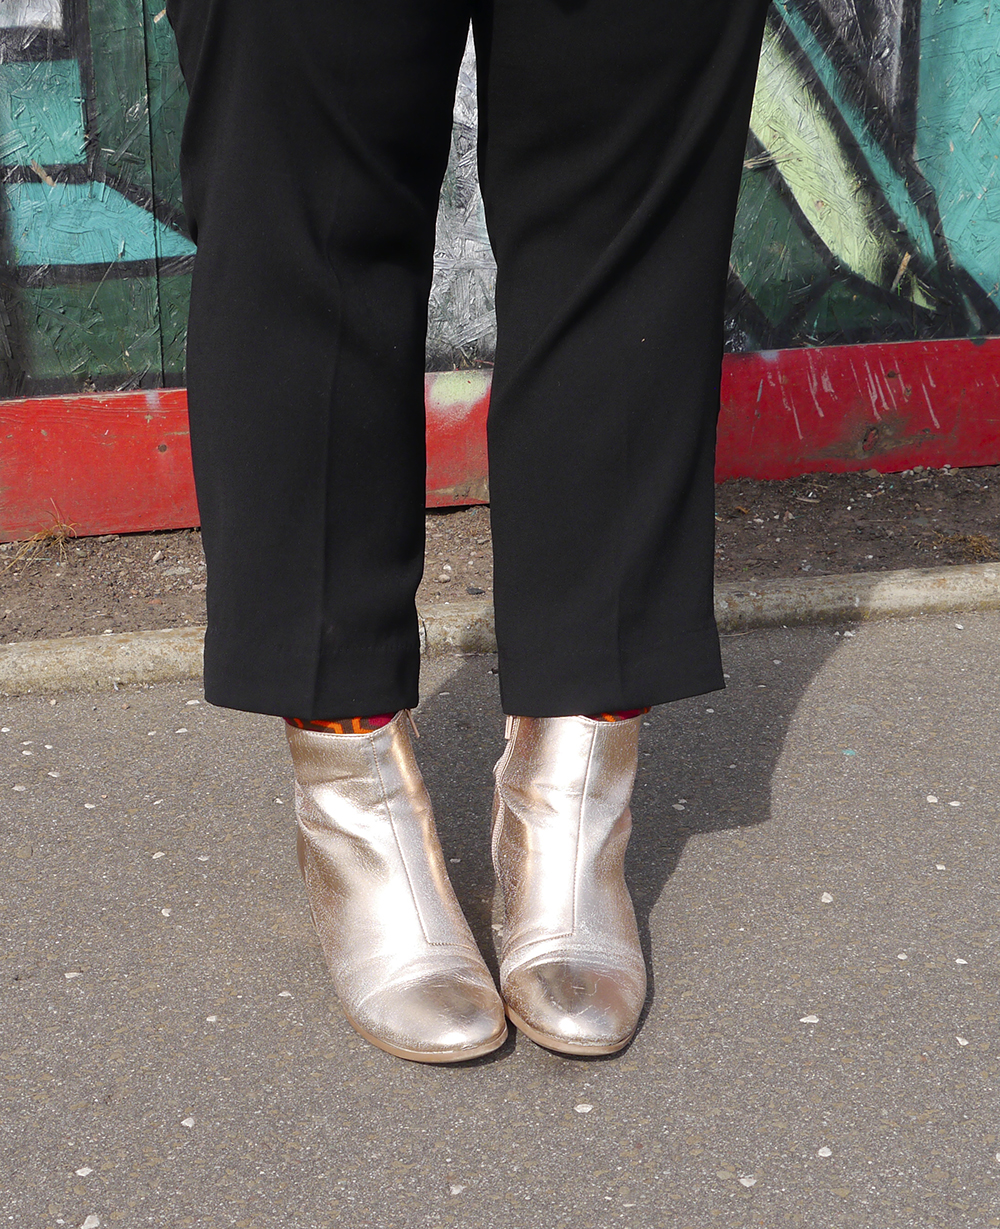 Dundee blogger Helen from Wardrobe Conversations wears black trousers with The Shinin patterned socks from DCA Shop and metallic Primark boots